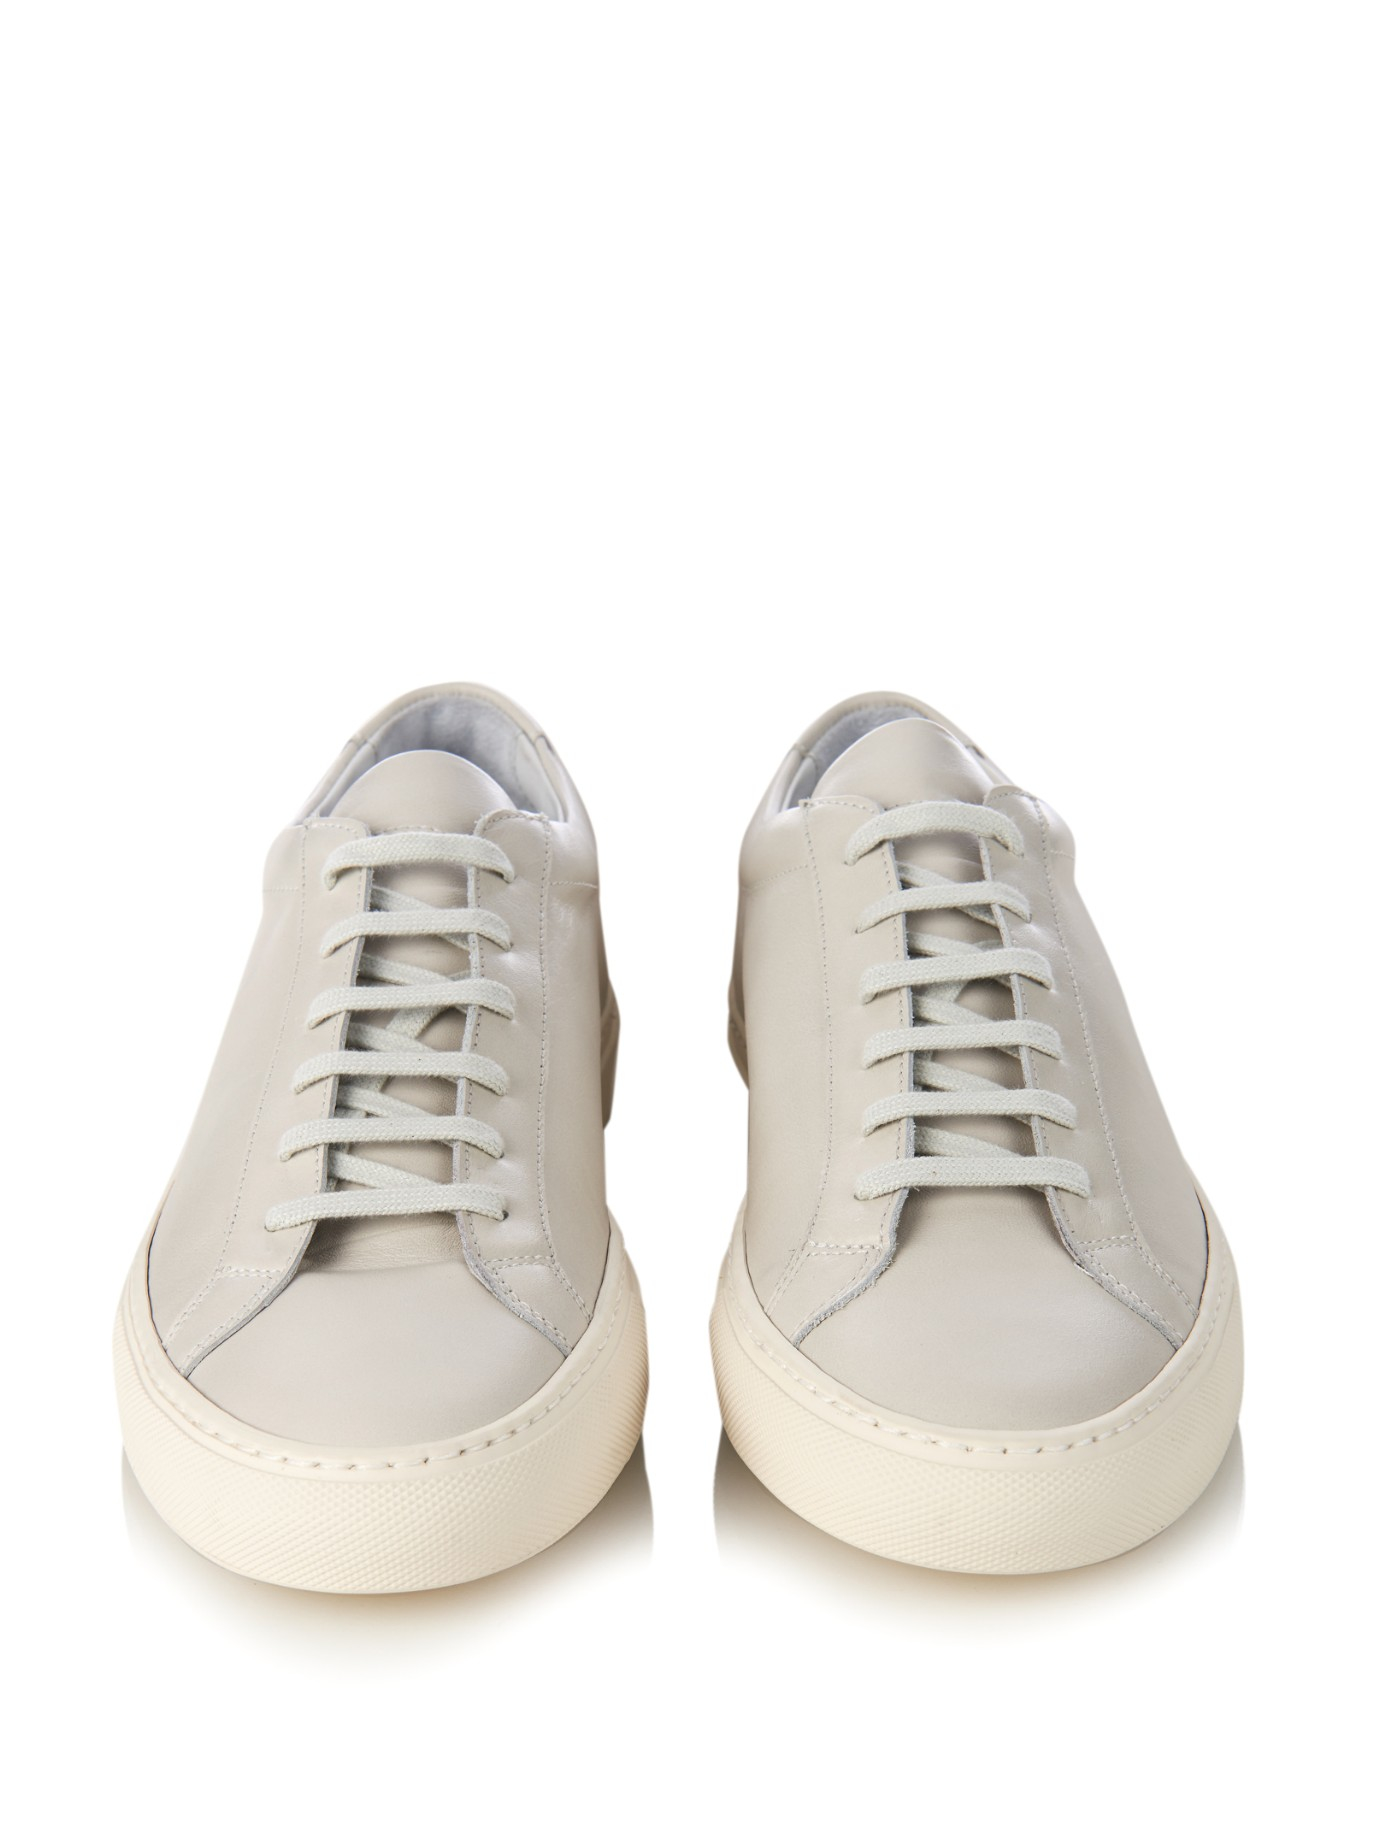 common projects achilles low top trainers in white for men lyst. Black Bedroom Furniture Sets. Home Design Ideas